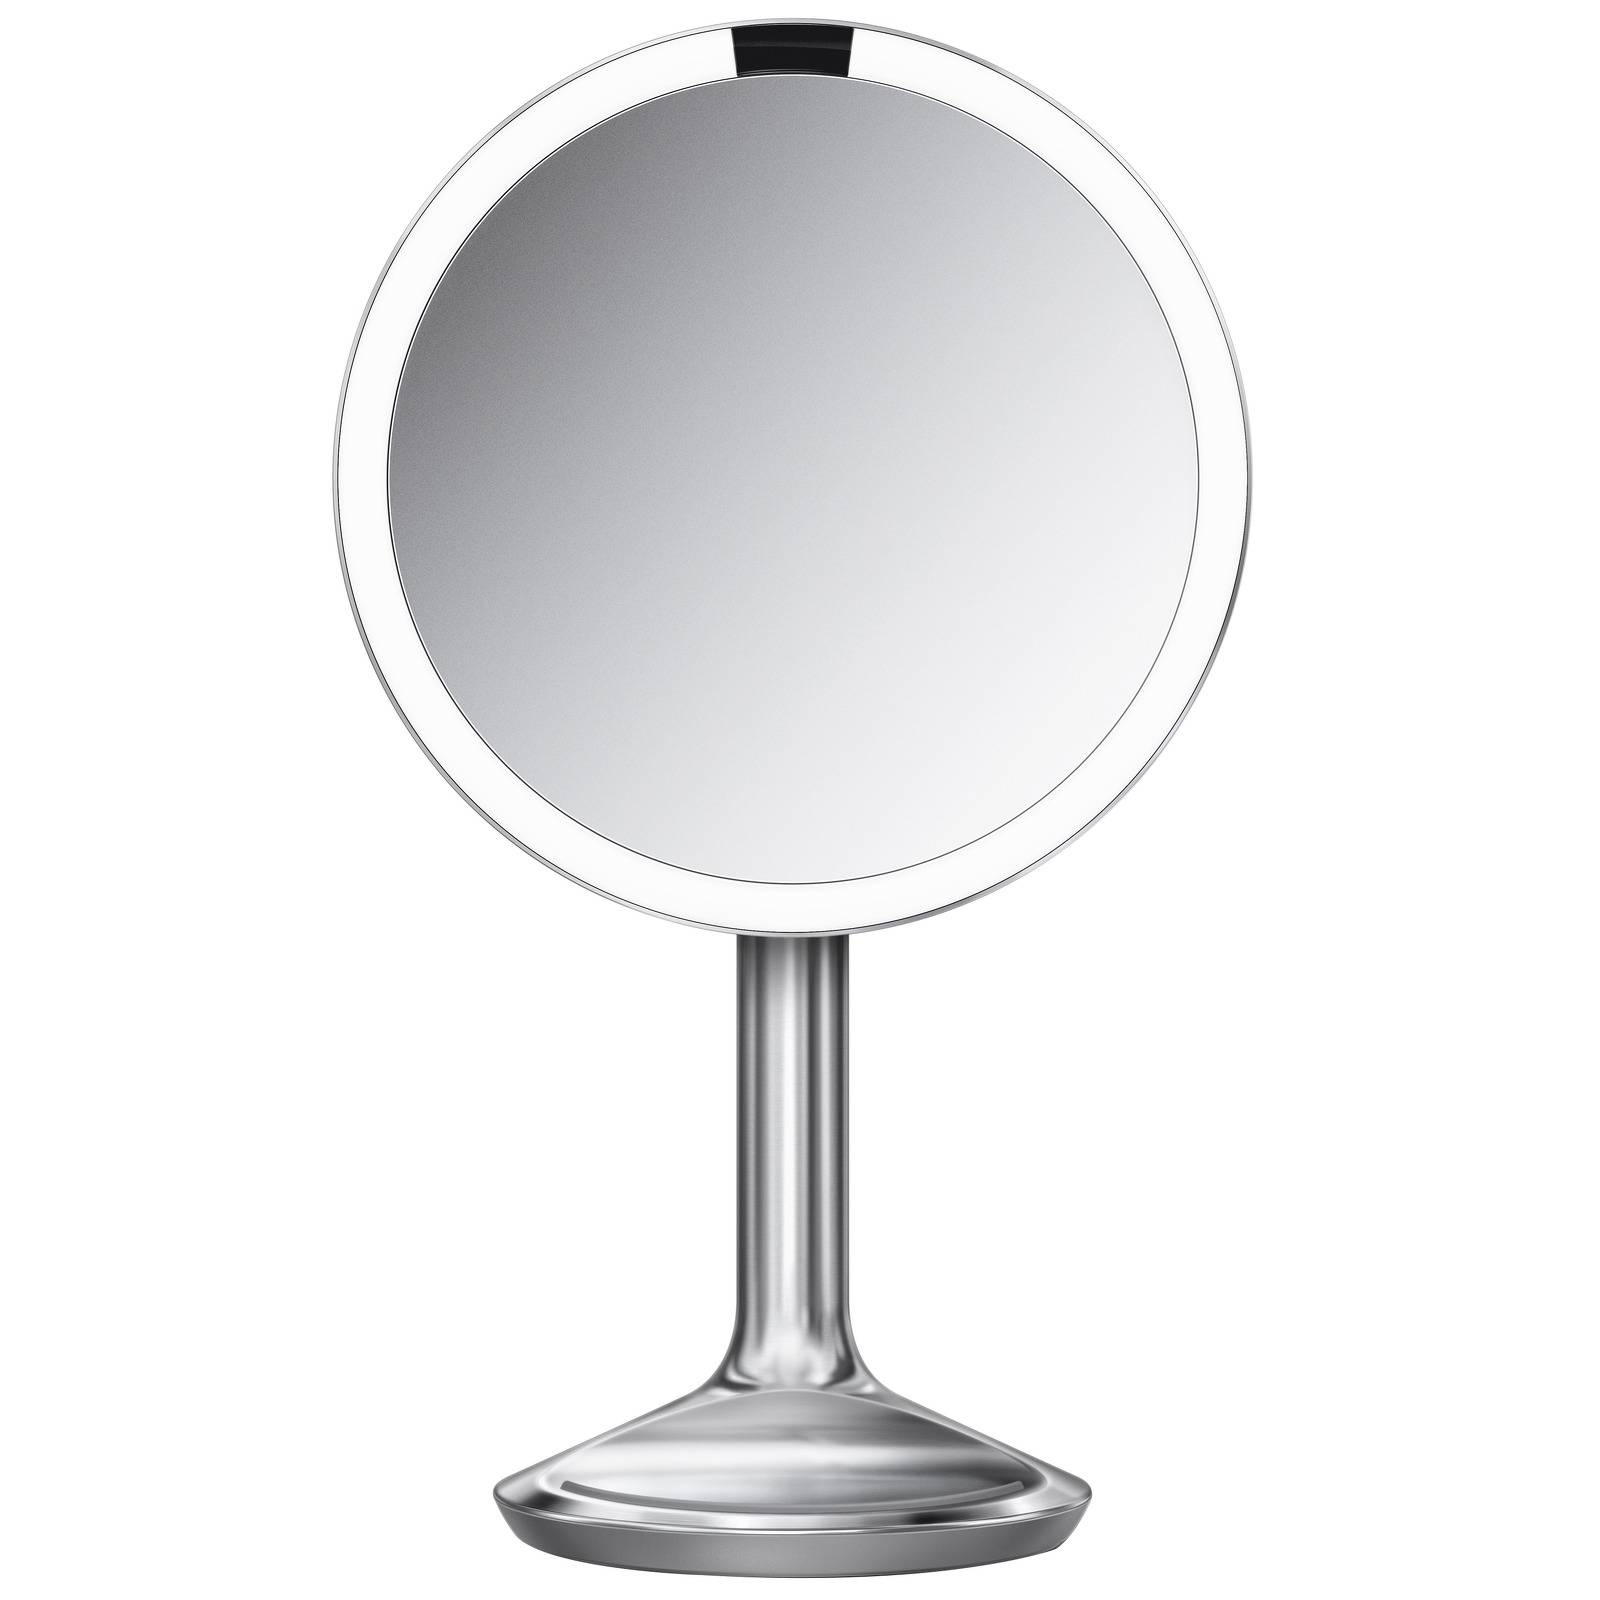 simplehuman - Sensor Mirror SE 5 x Magnification 20cm Sensor Mirror: Round, Stainless Steel, Corded for Women